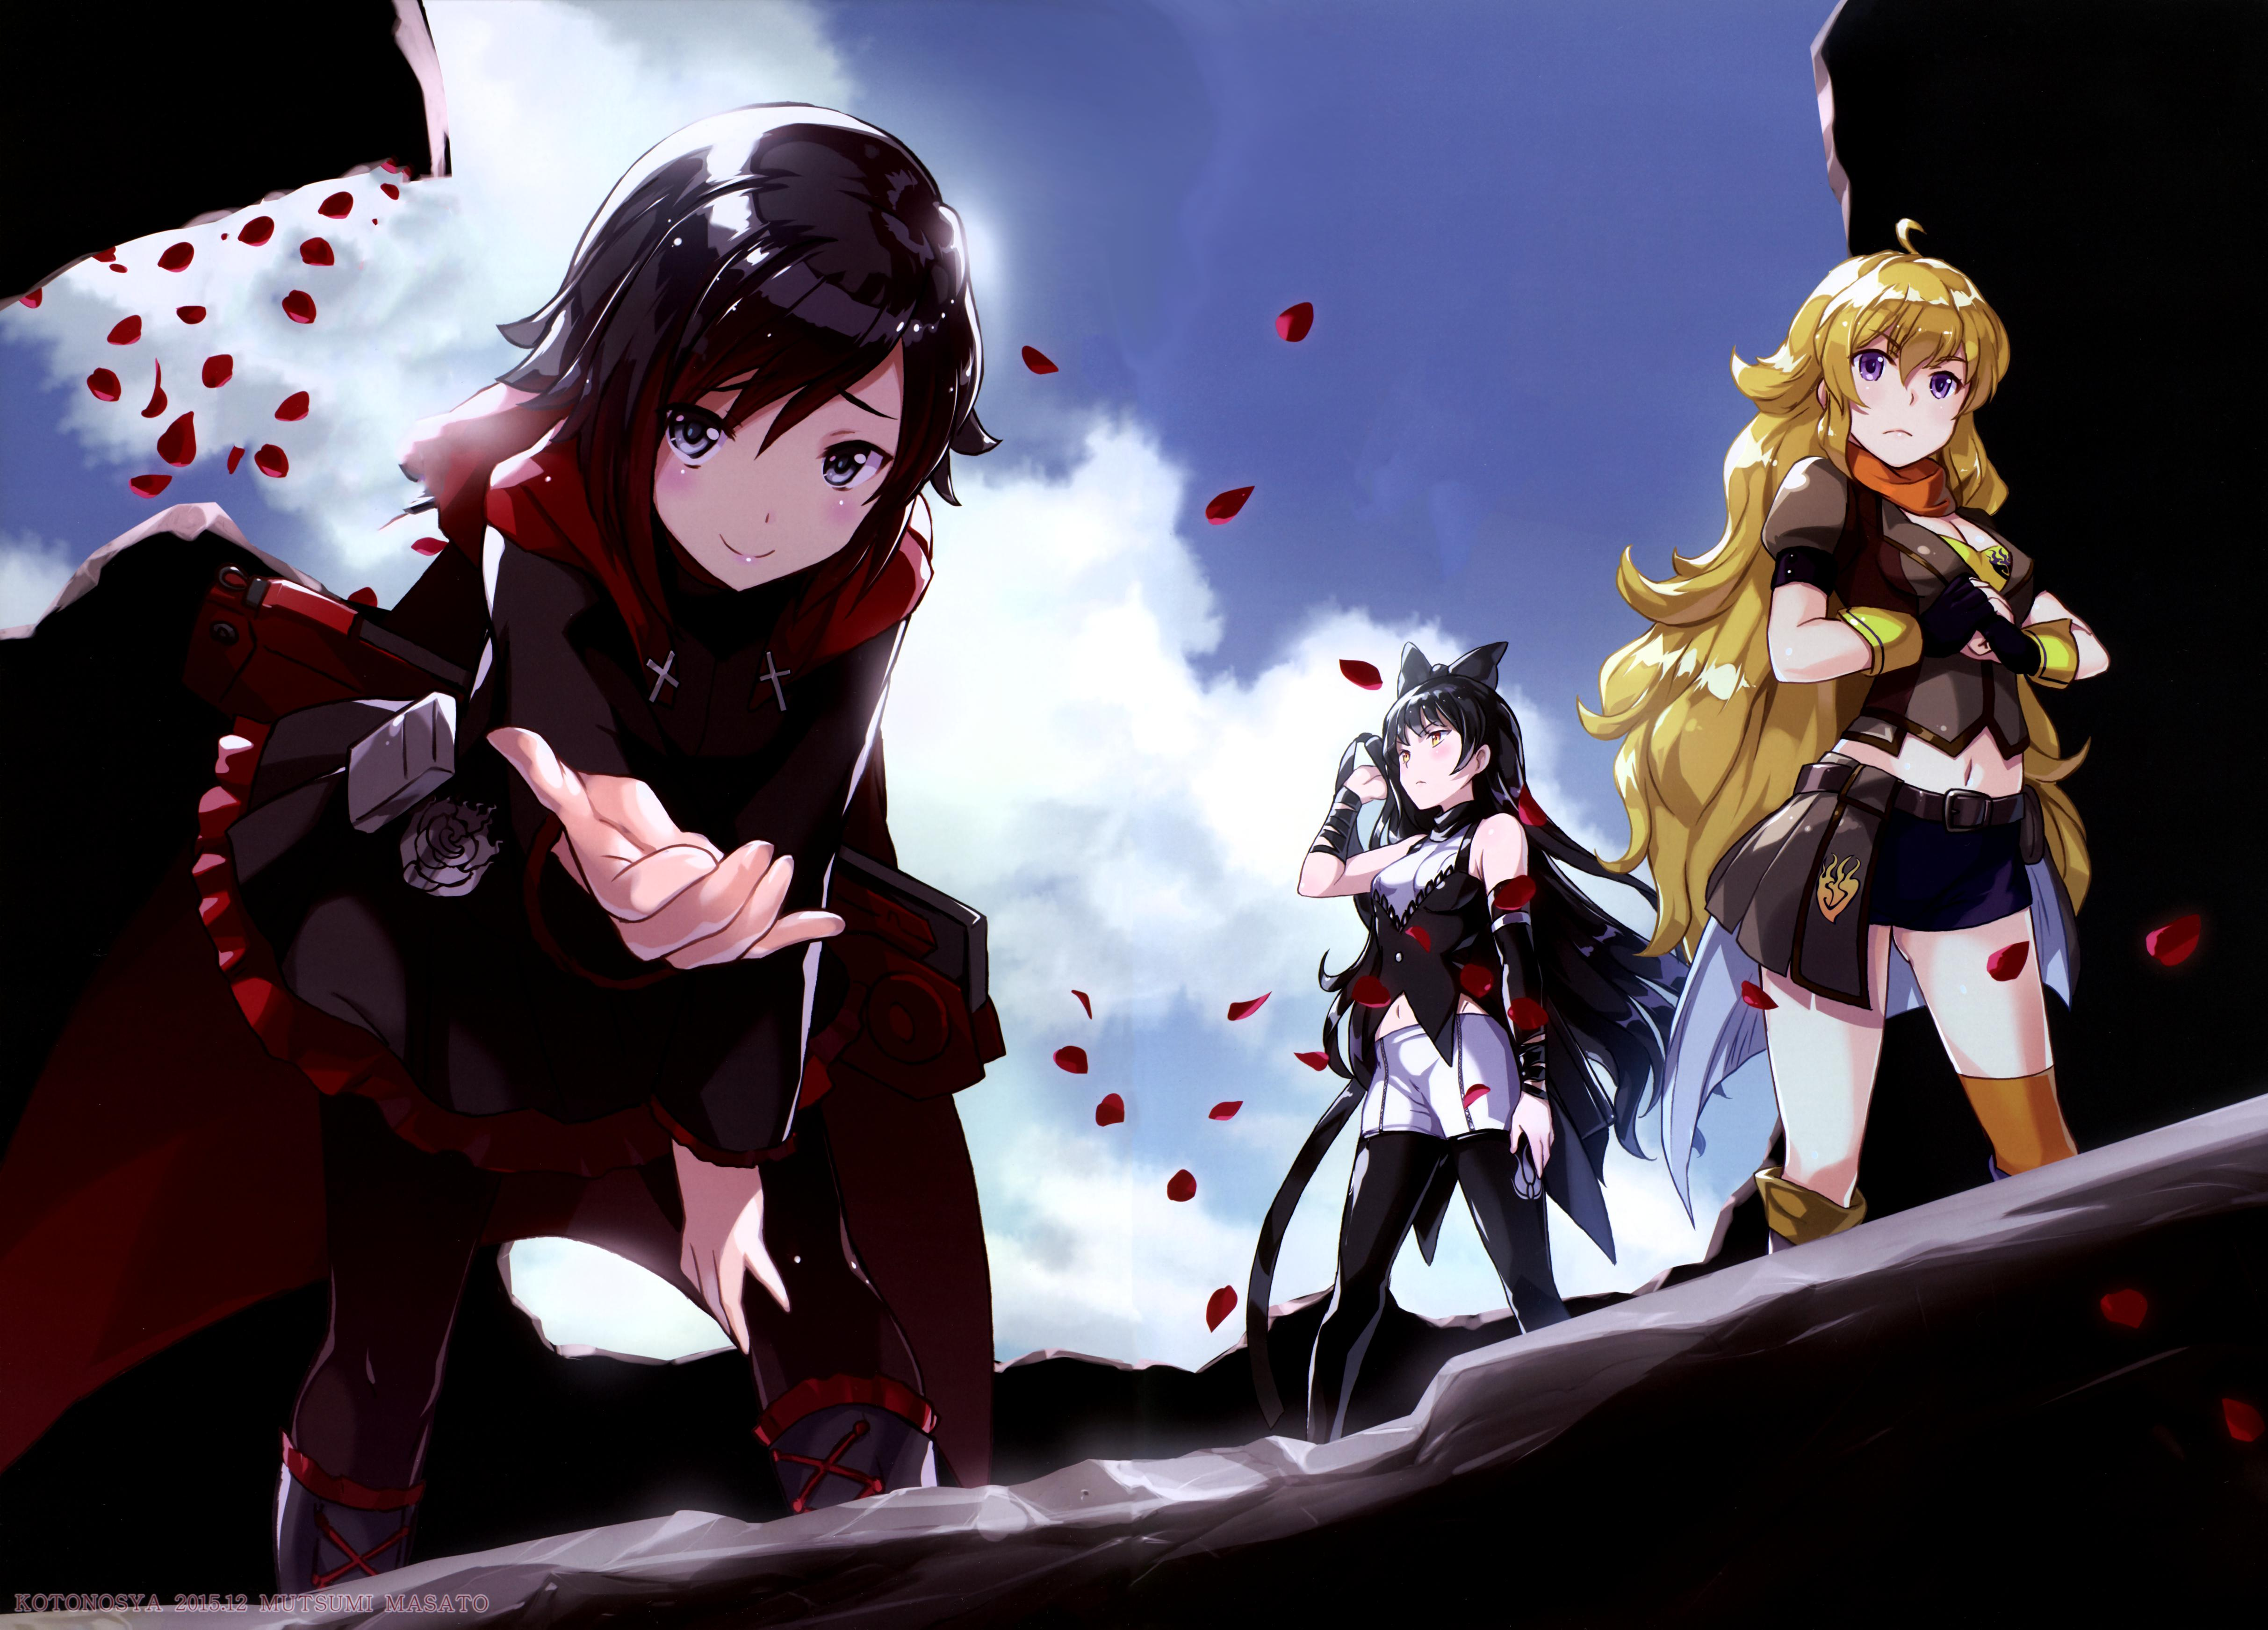 a surprisingly cool shot of team rwby minus w to the